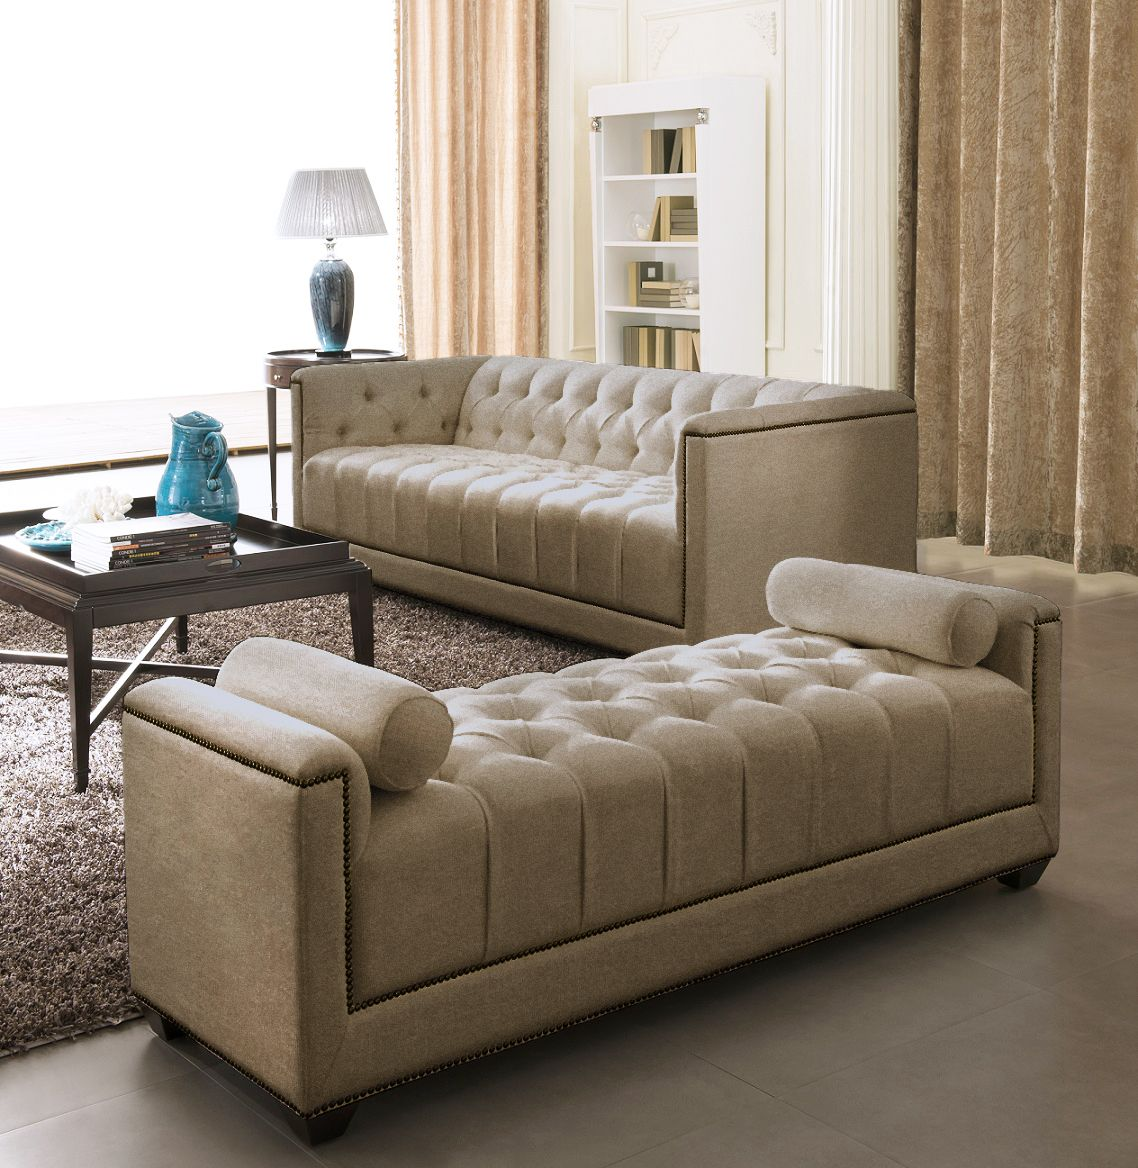 modern sofa set designs for living room Vijay Pinterest Sofa